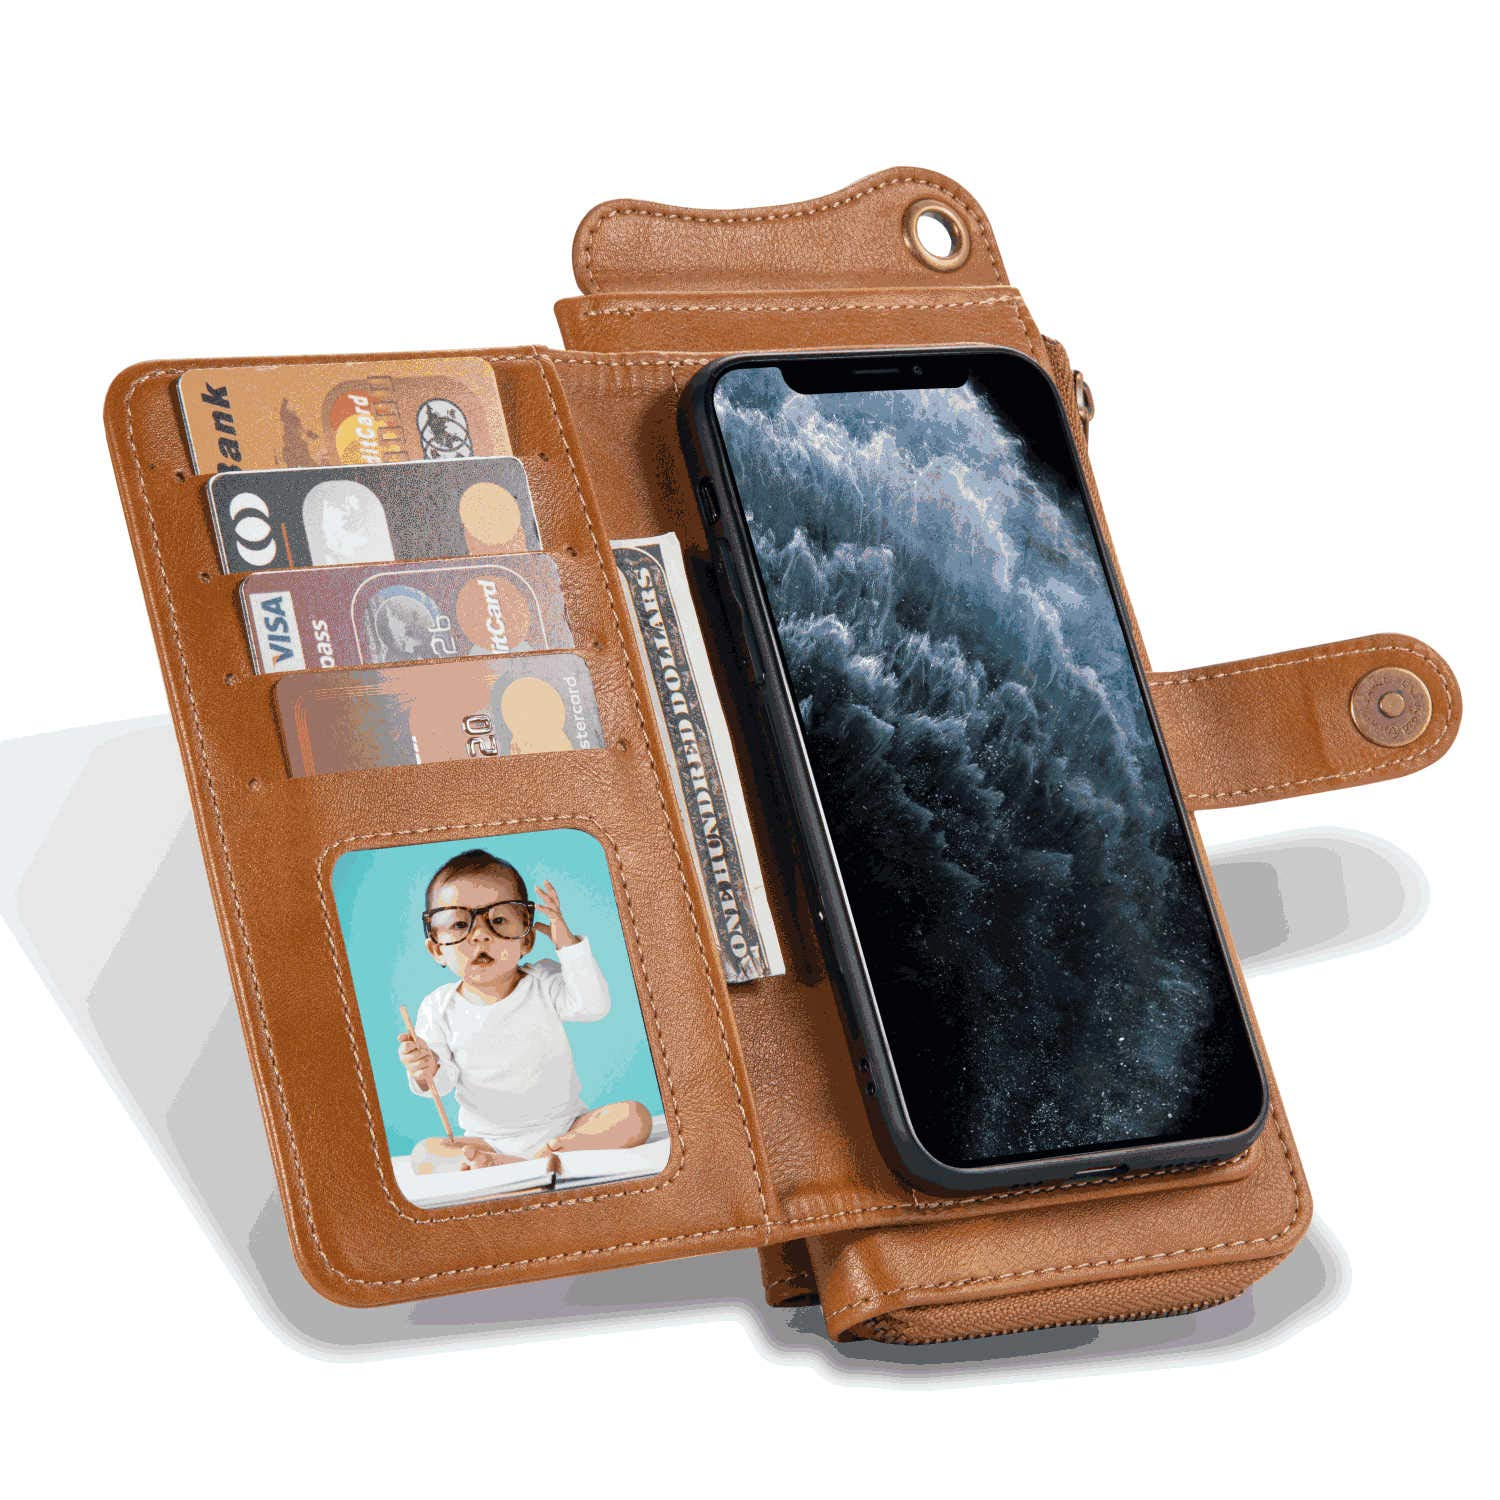 Coffee Leather Flip Case Wallet for iPhone 11 Pro Max Stylish Cover Compatible with iPhone 11 Pro Max